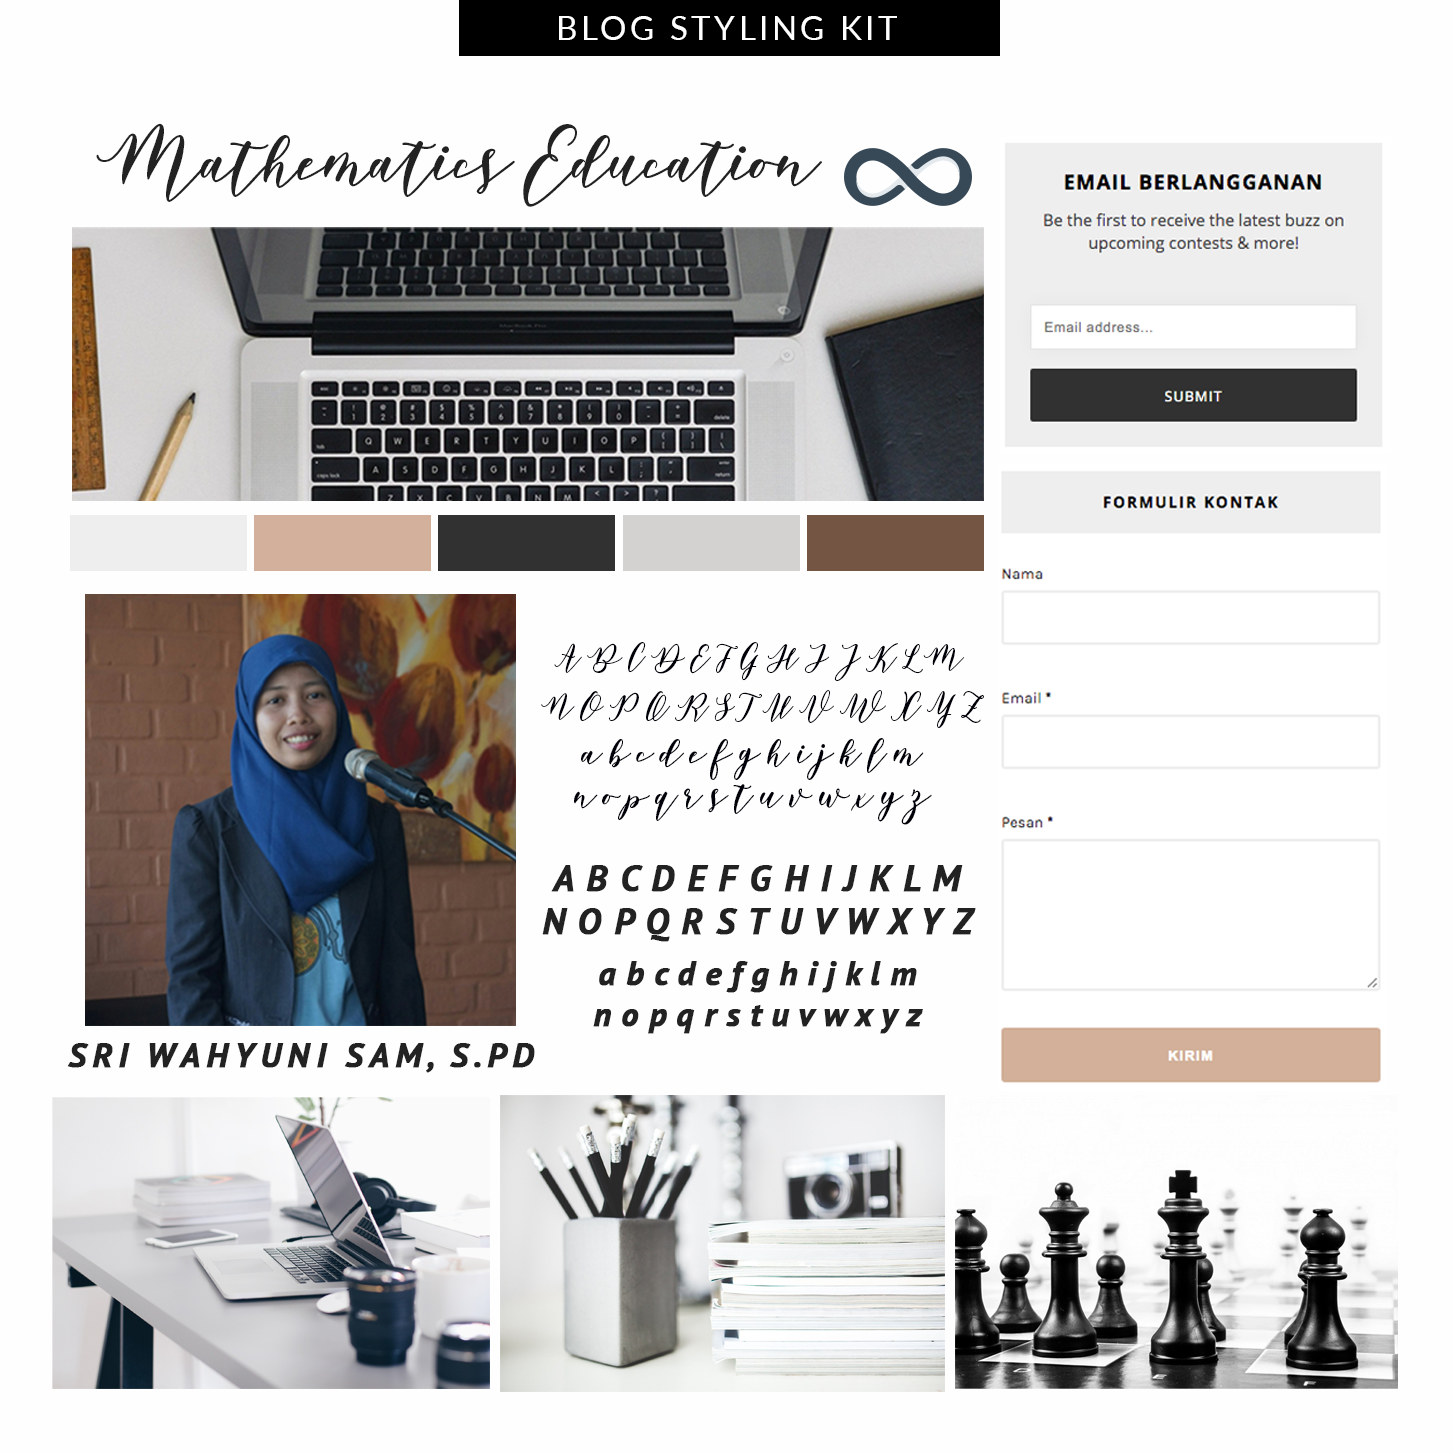 Desain Blog Mathematics Education